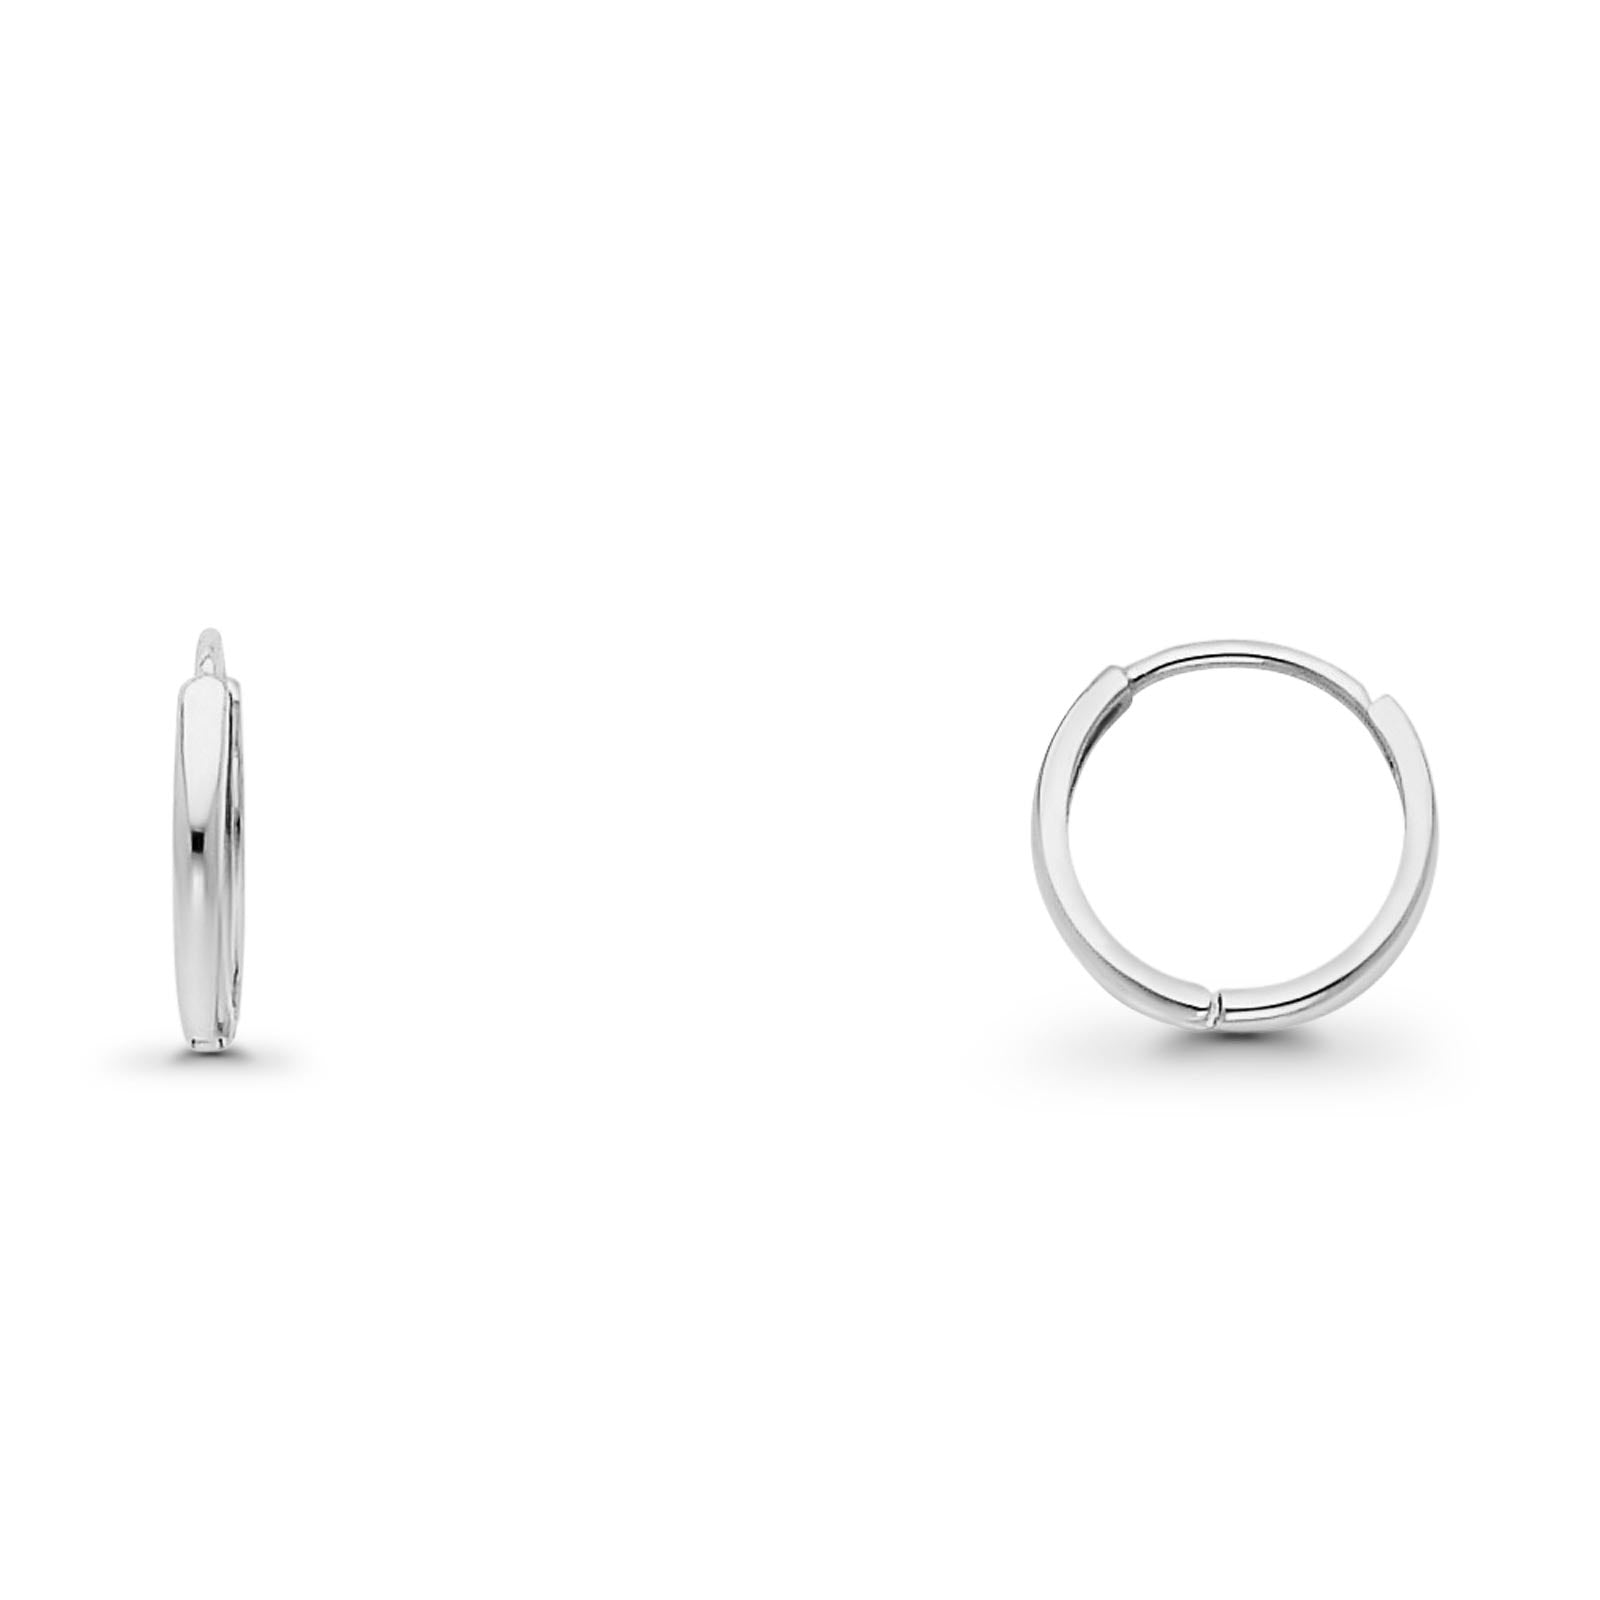 Attractive 14K White Gold Real 2mm Huggies Earrings Hinged 0.8gram 11mm